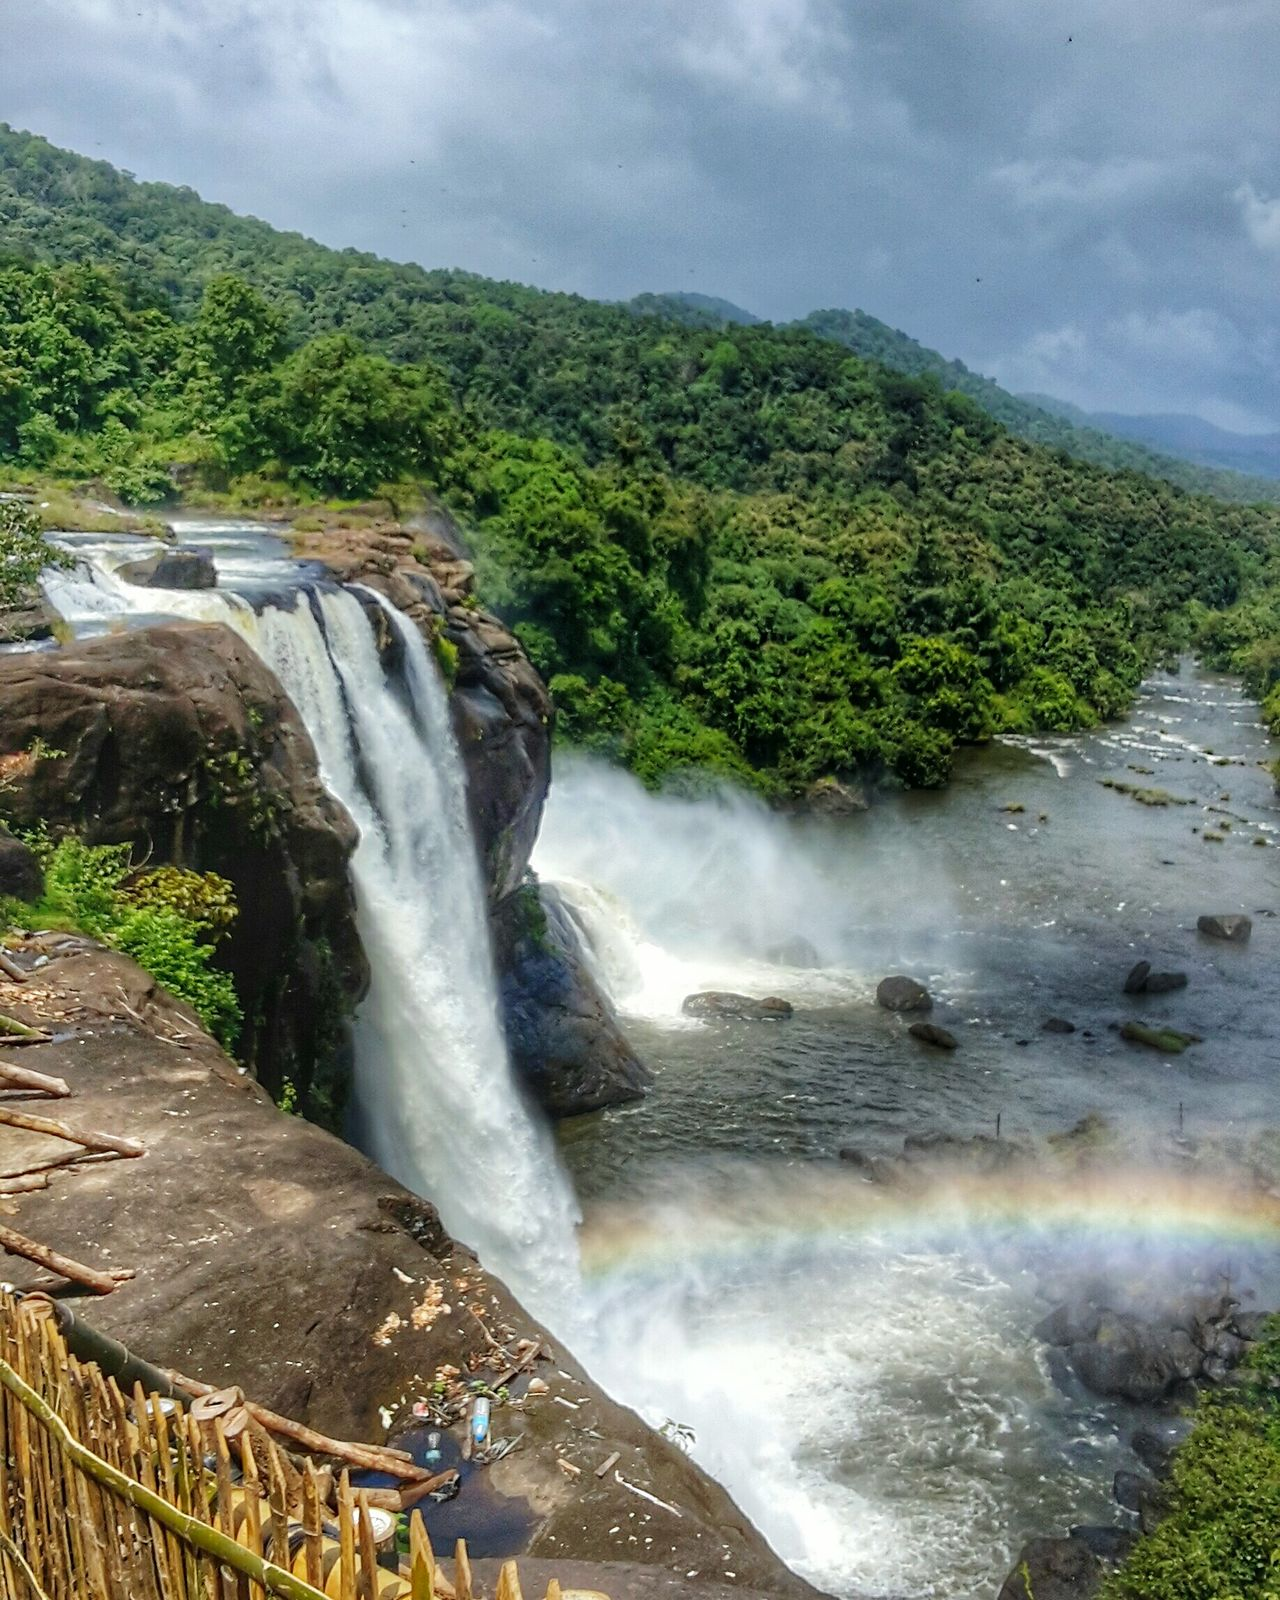 Rainbow Clouds Water Waterfall Travel Destinations Scenics Tourism Landscape Nature Beauty In Nature No People Cloud - Sky Vacations Outdoors Motion Stream - Flowing Water Chillingg. ☺ Light Stationary Likeforlike Outdoorlife Day